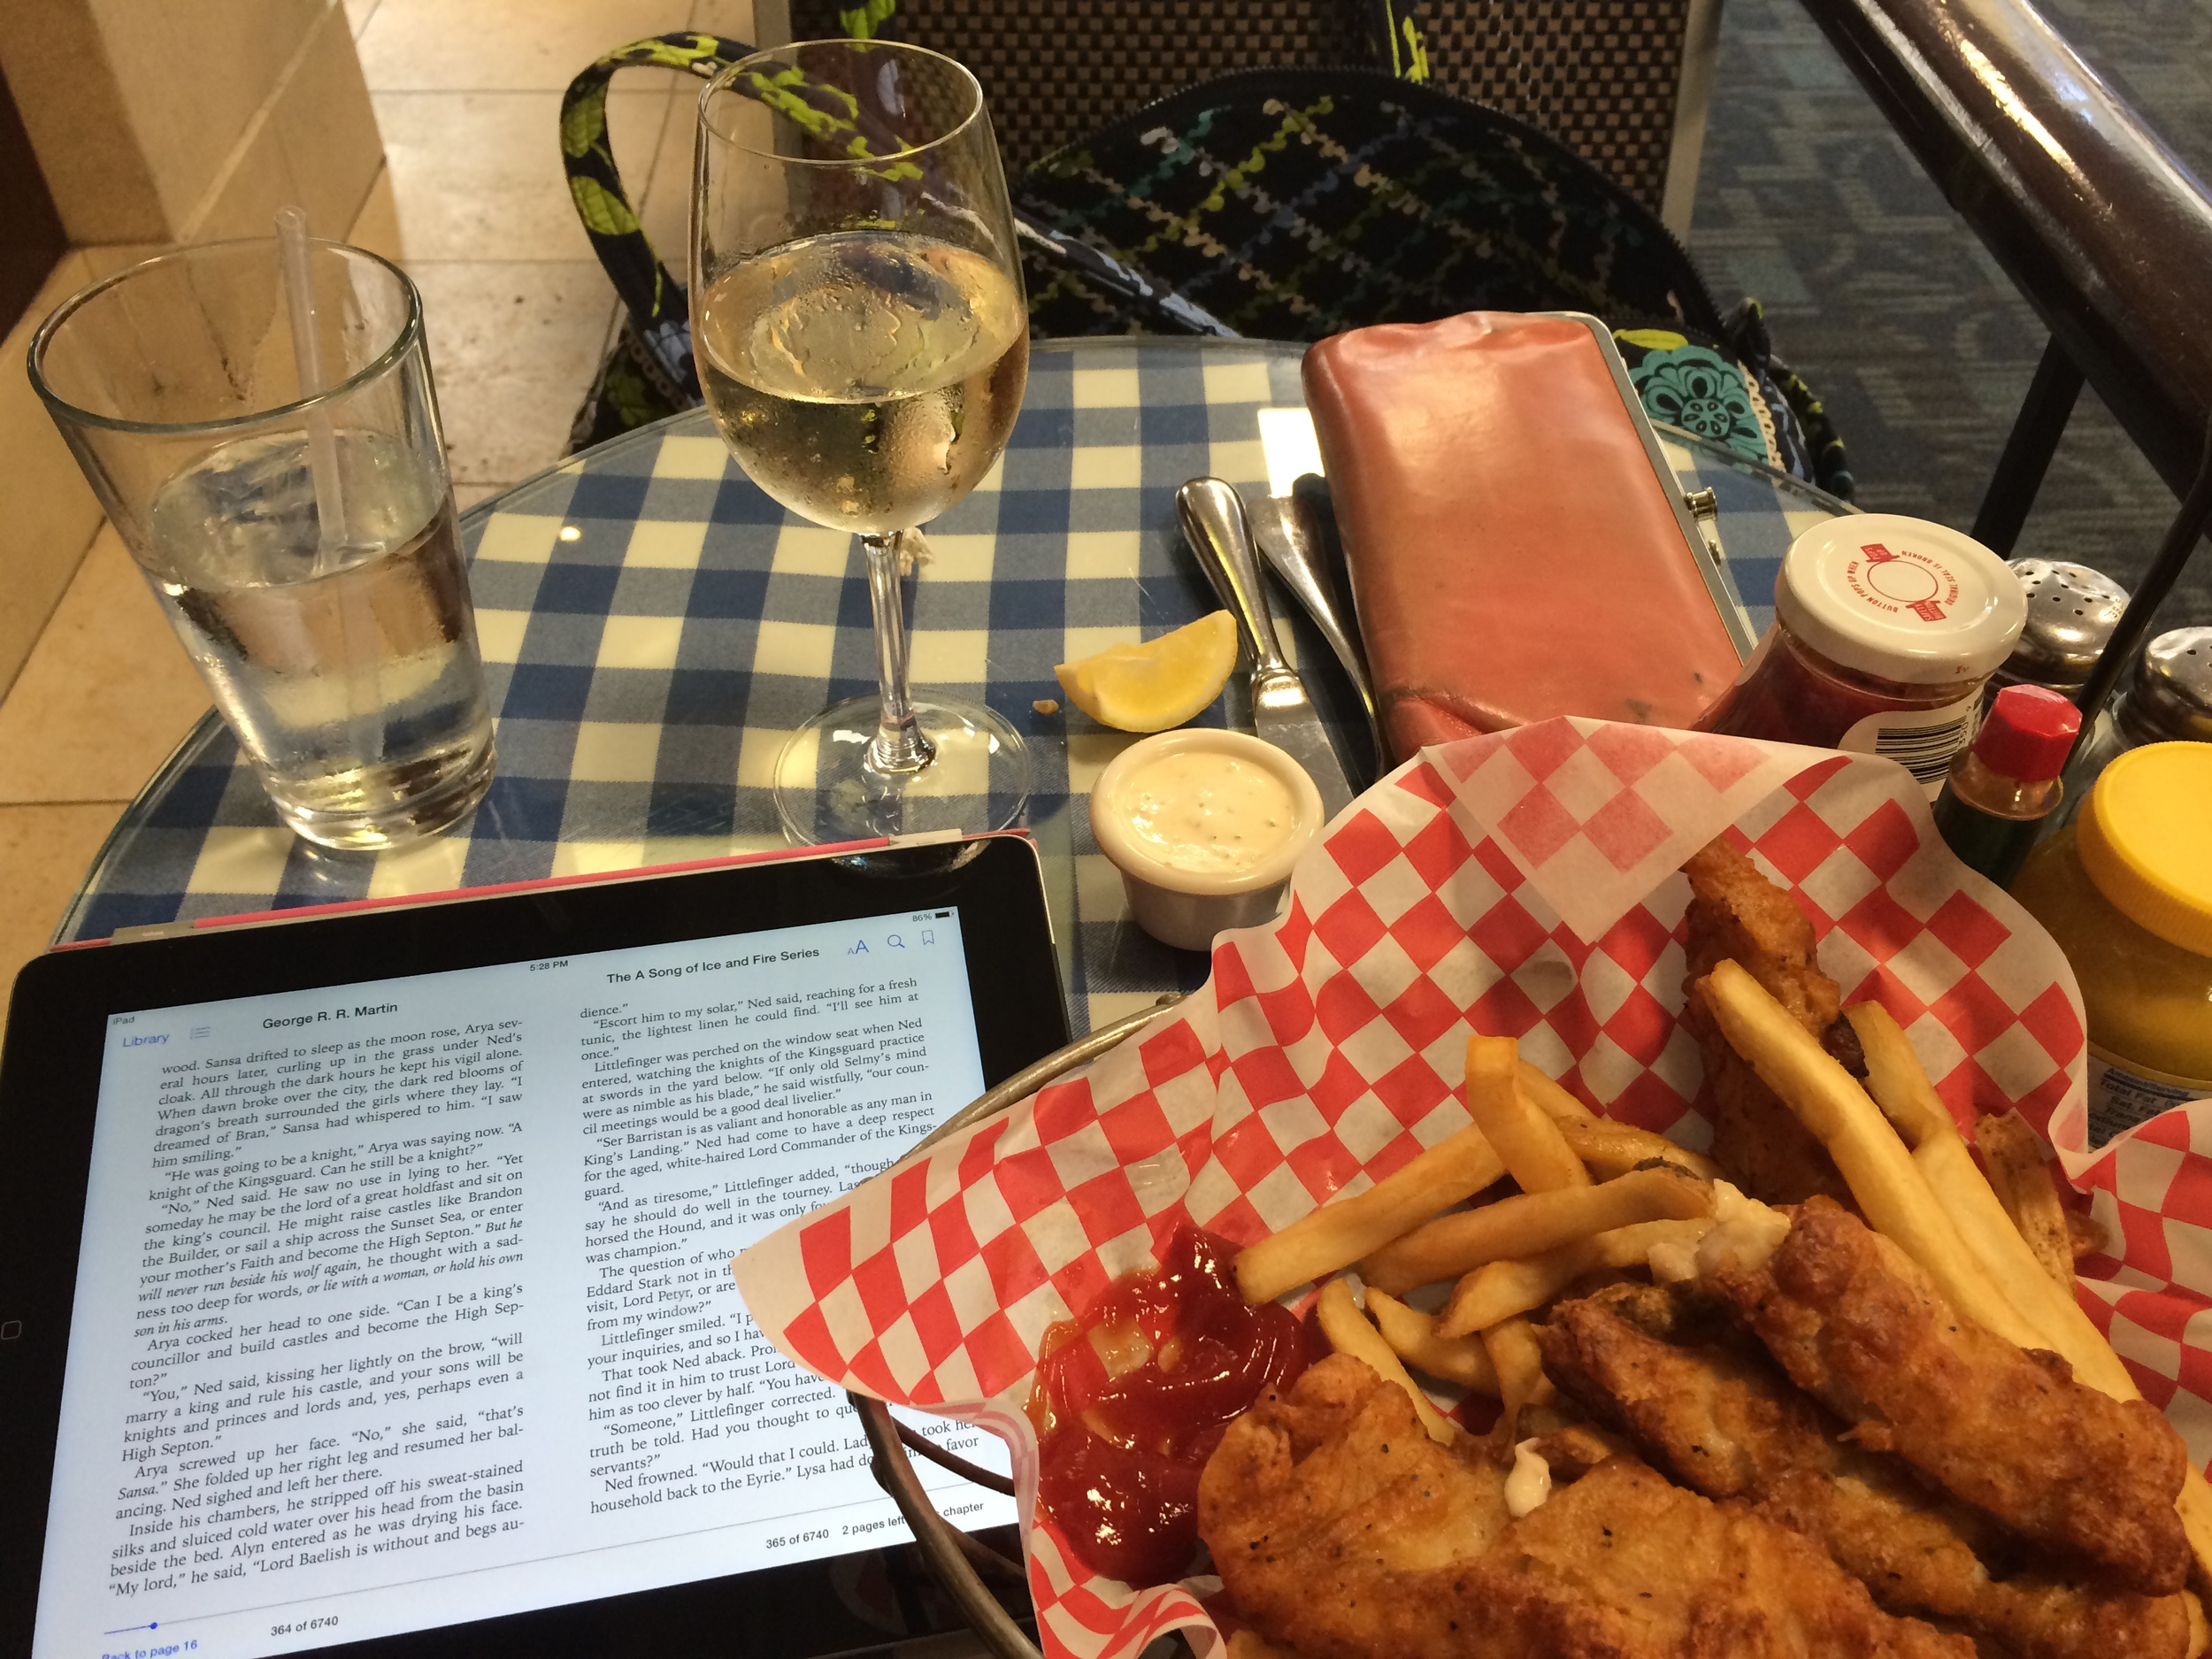 Not a very decadent meal, but I quite enjoyed unwinding at the airport with Fish 'n' Chips, Pinot Grigio, and some Game of Thrones ;)